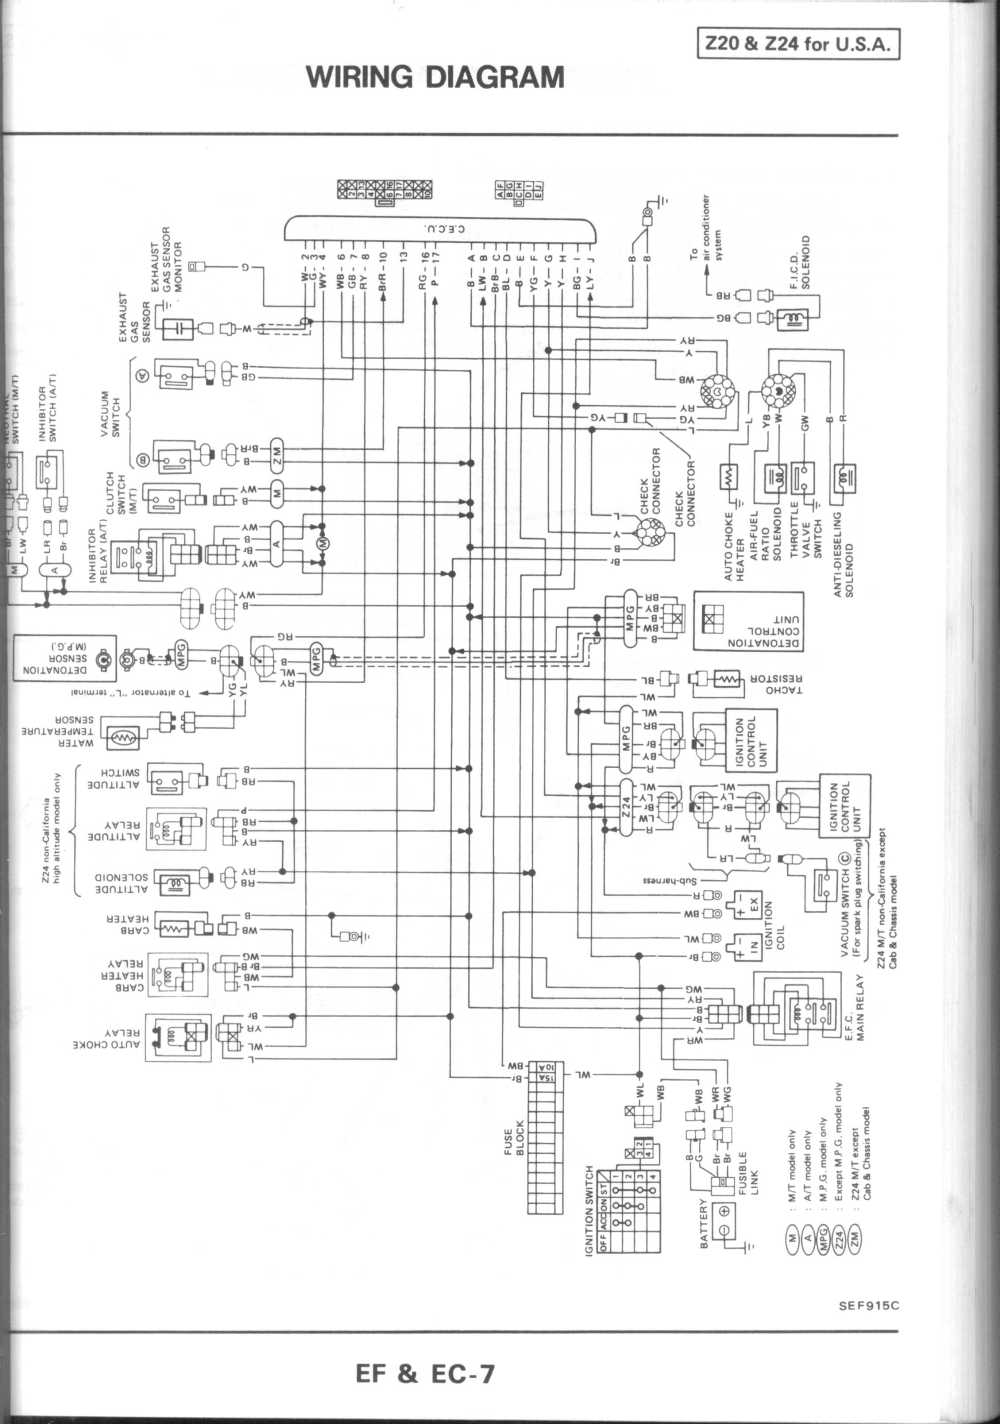 medium resolution of 1987 nissan pickup wiring diagram simple wiring diagram rh 26 mara cujas de 1987 nissan pickup